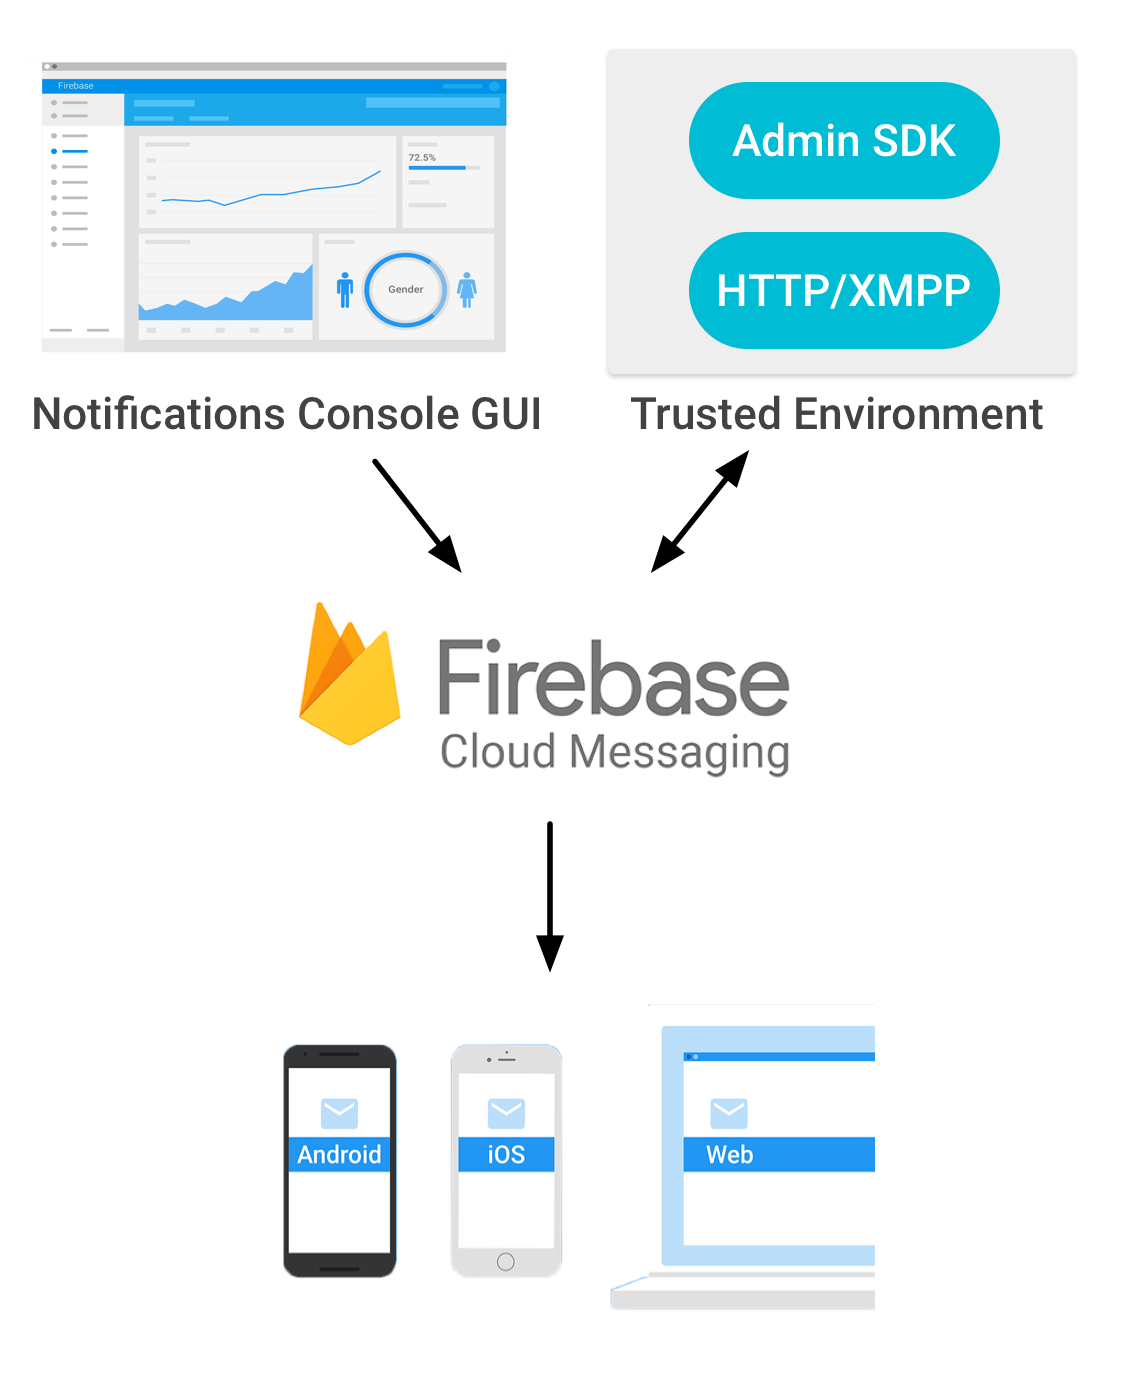 Firebase Cloud Messaging How Does An Engine Work Diagram It Architecture